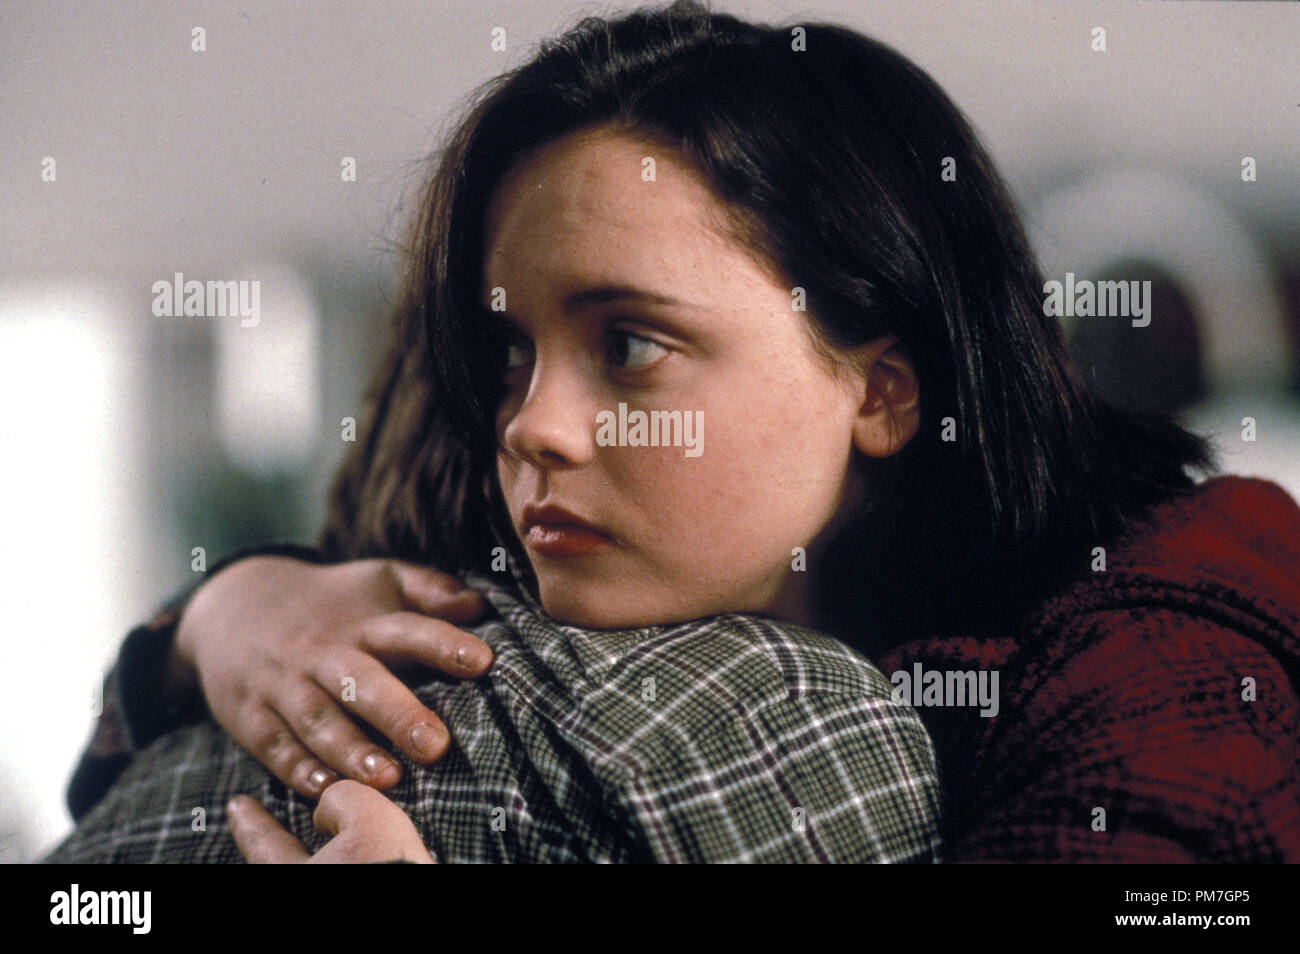 Film Still From The Ice Storm Christina Ricci 1997 Fox Searchlight Photo Credit Barry Wetcher File Reference 31013077tha For Editorial Use Only All